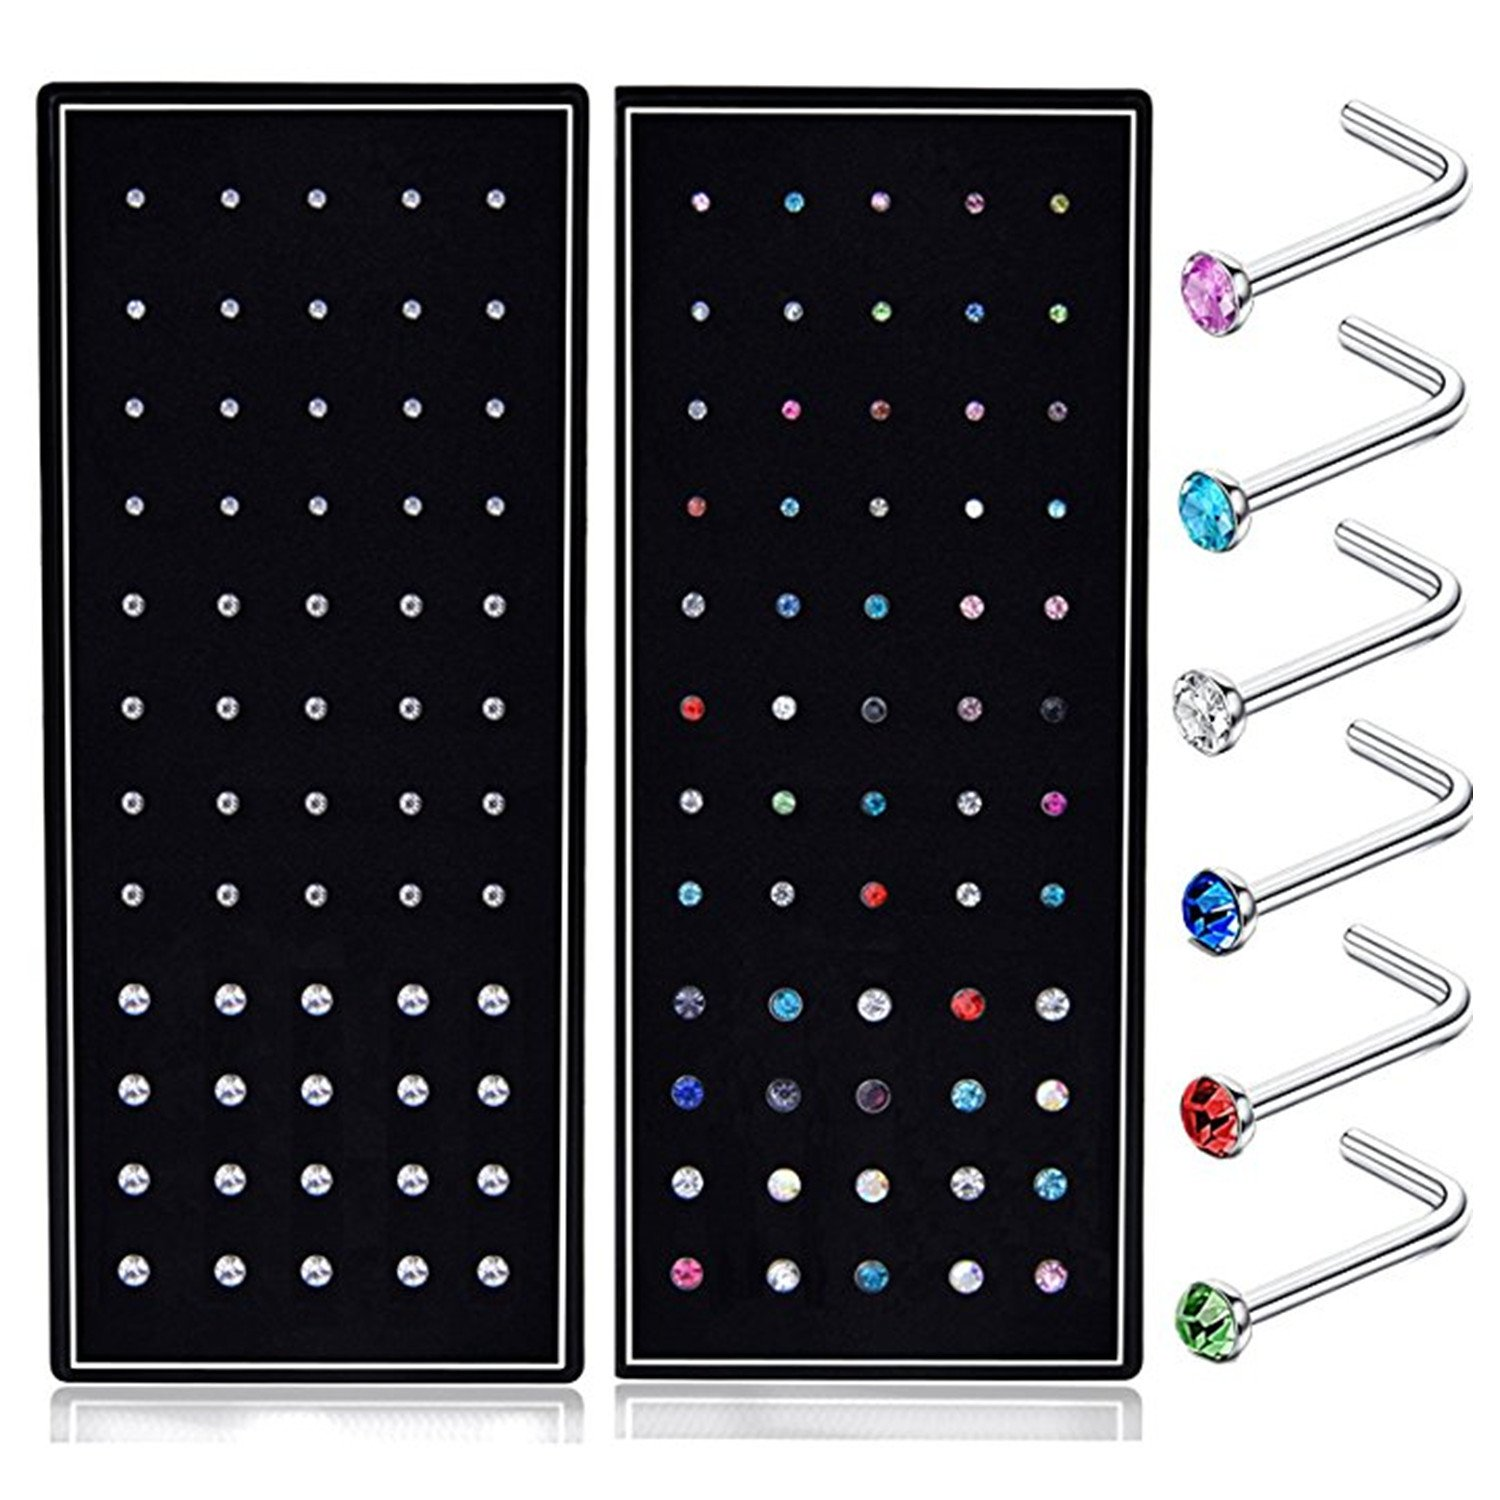 SMUOBT 120pcs 22G L Shaped Stainless Steel Nose Studs Rings Piercing Pin Body Jewelry 1.5mm 2mm 2.5mm a Set White and Colour by SMUOBT